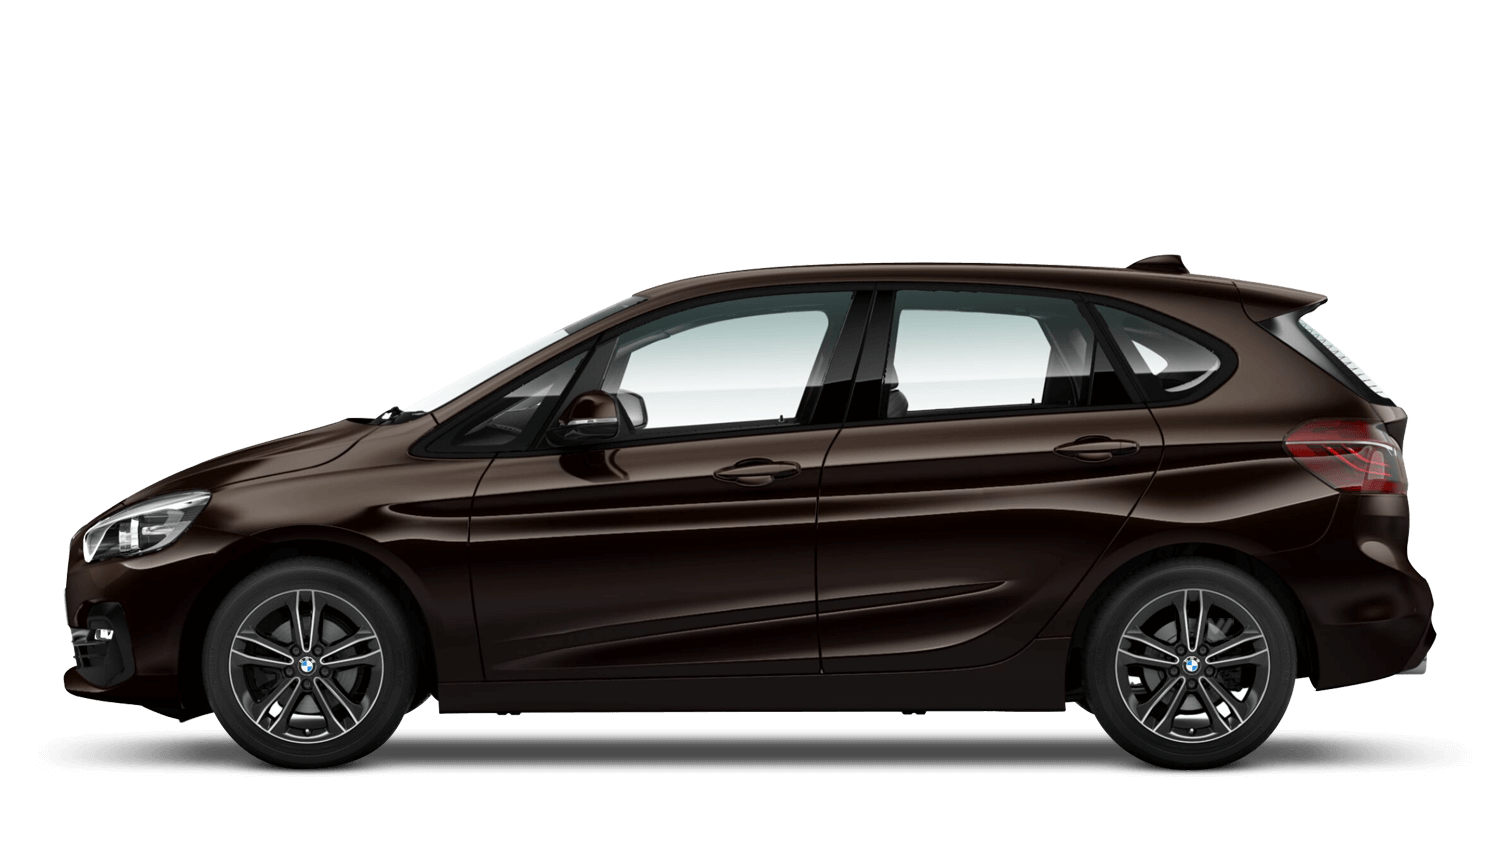 Sparkling Brown (Metallic) BMW 2 Series Active Tourer